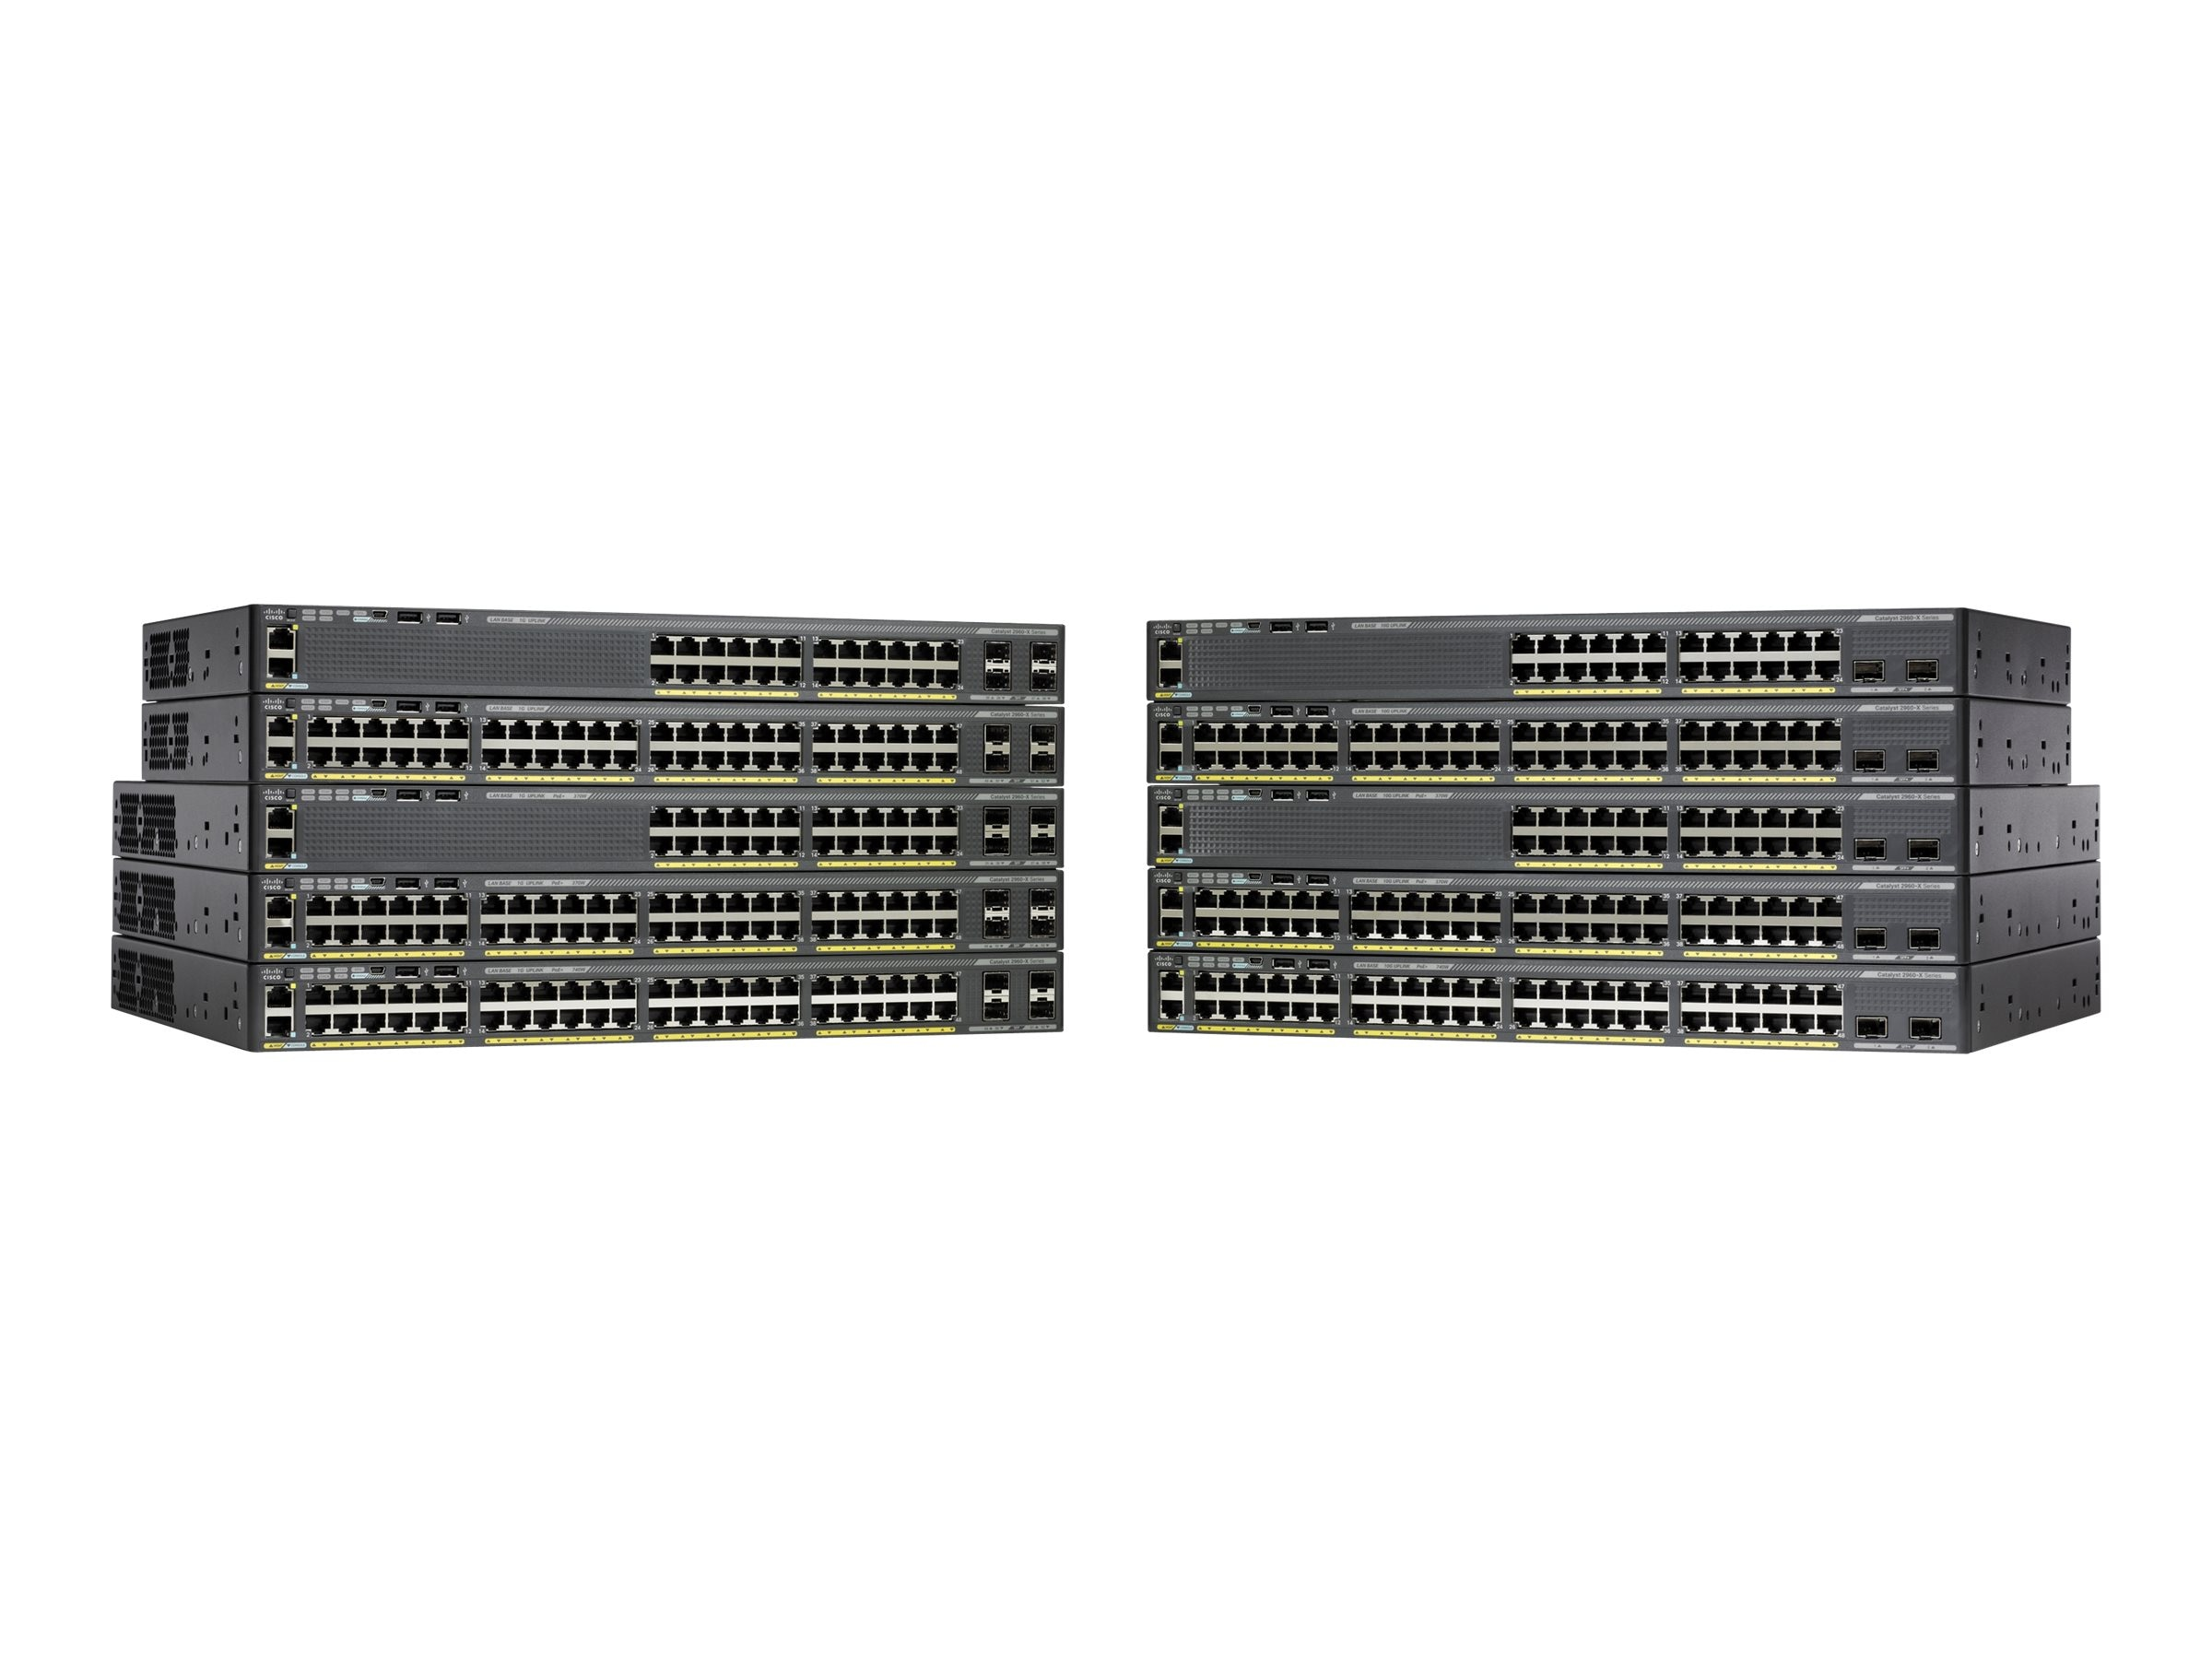 Cisco Catalyst 2960-XR 48 GIGE PoE  740W 2X SFP, WS-C2960XR-48FPD-I, 16227664, Network Switches